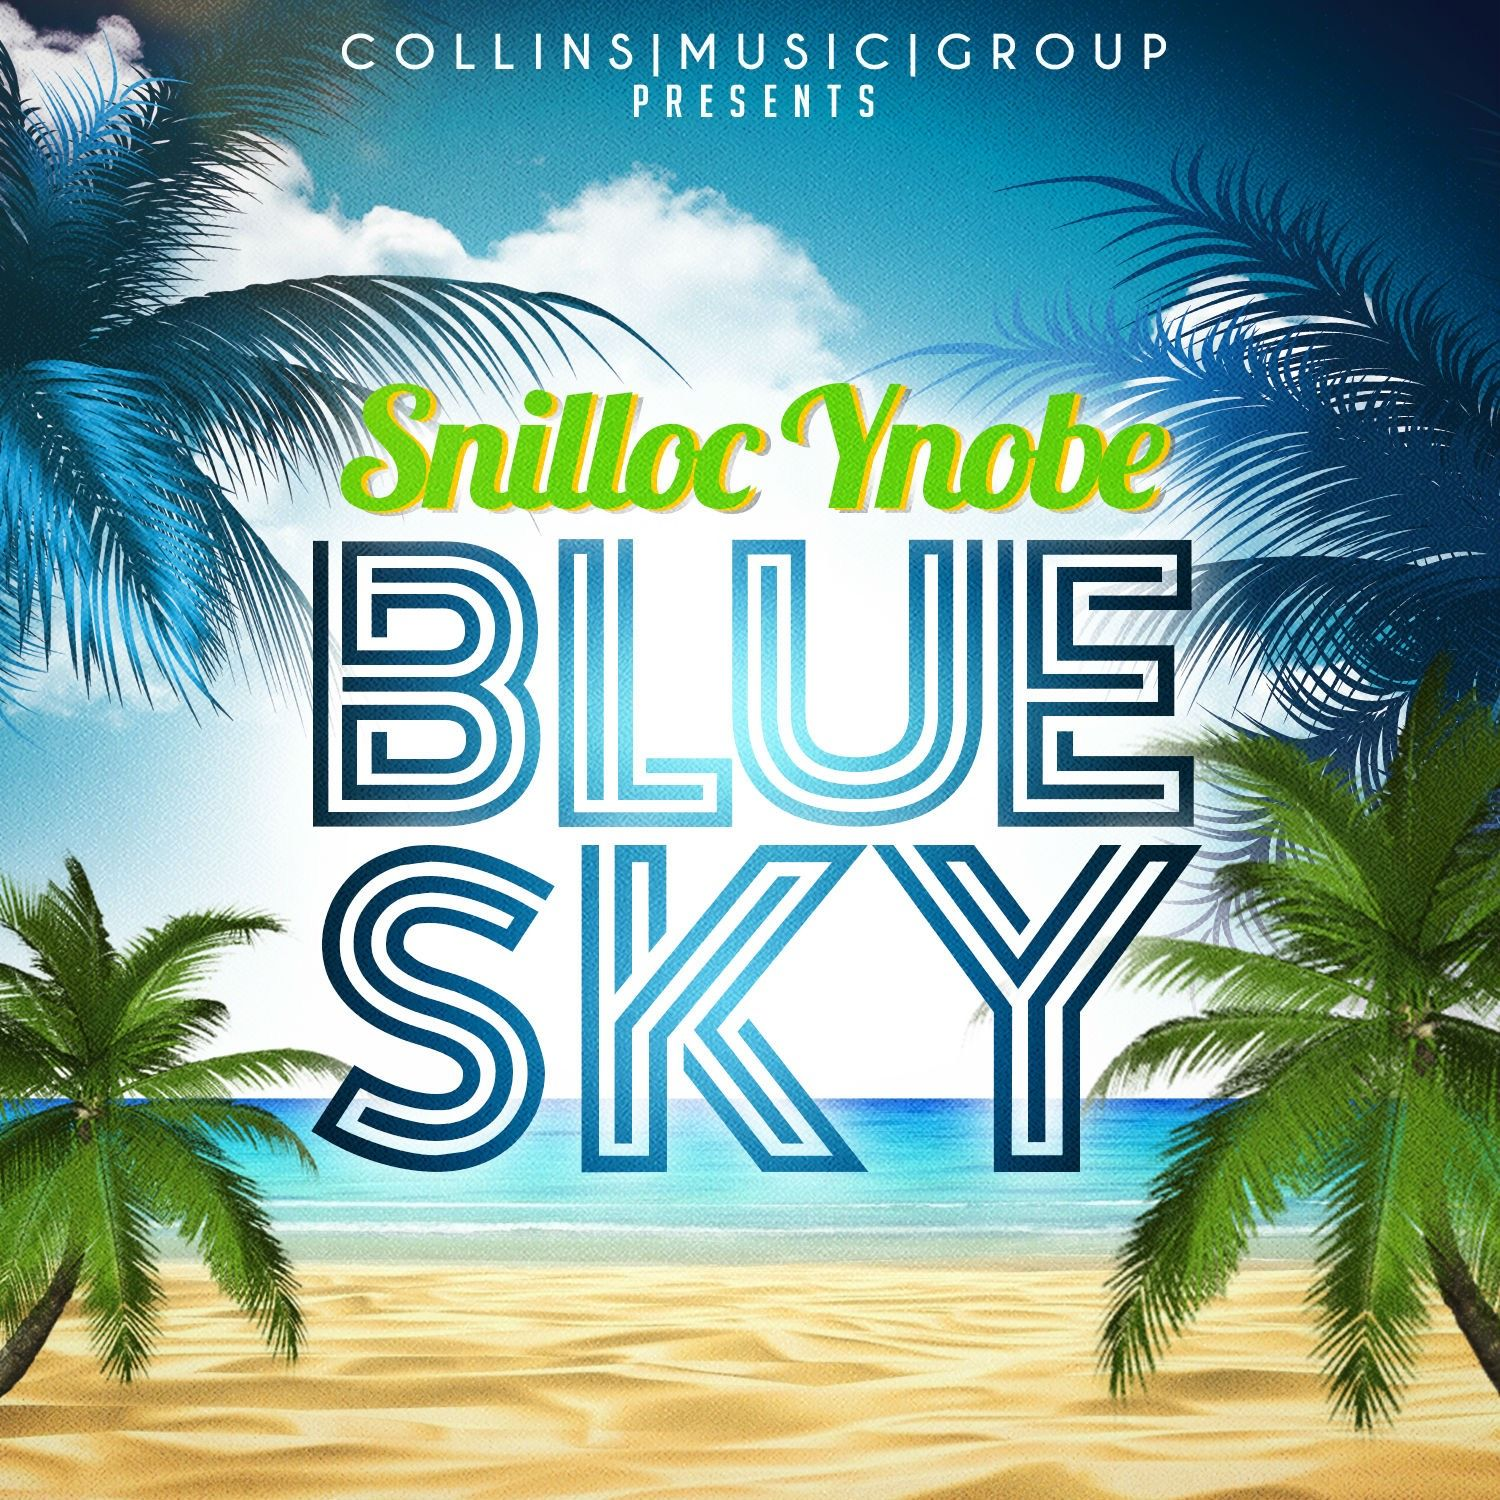 Snilloc Ynobe | Posts | Sky, Music, Summer songs